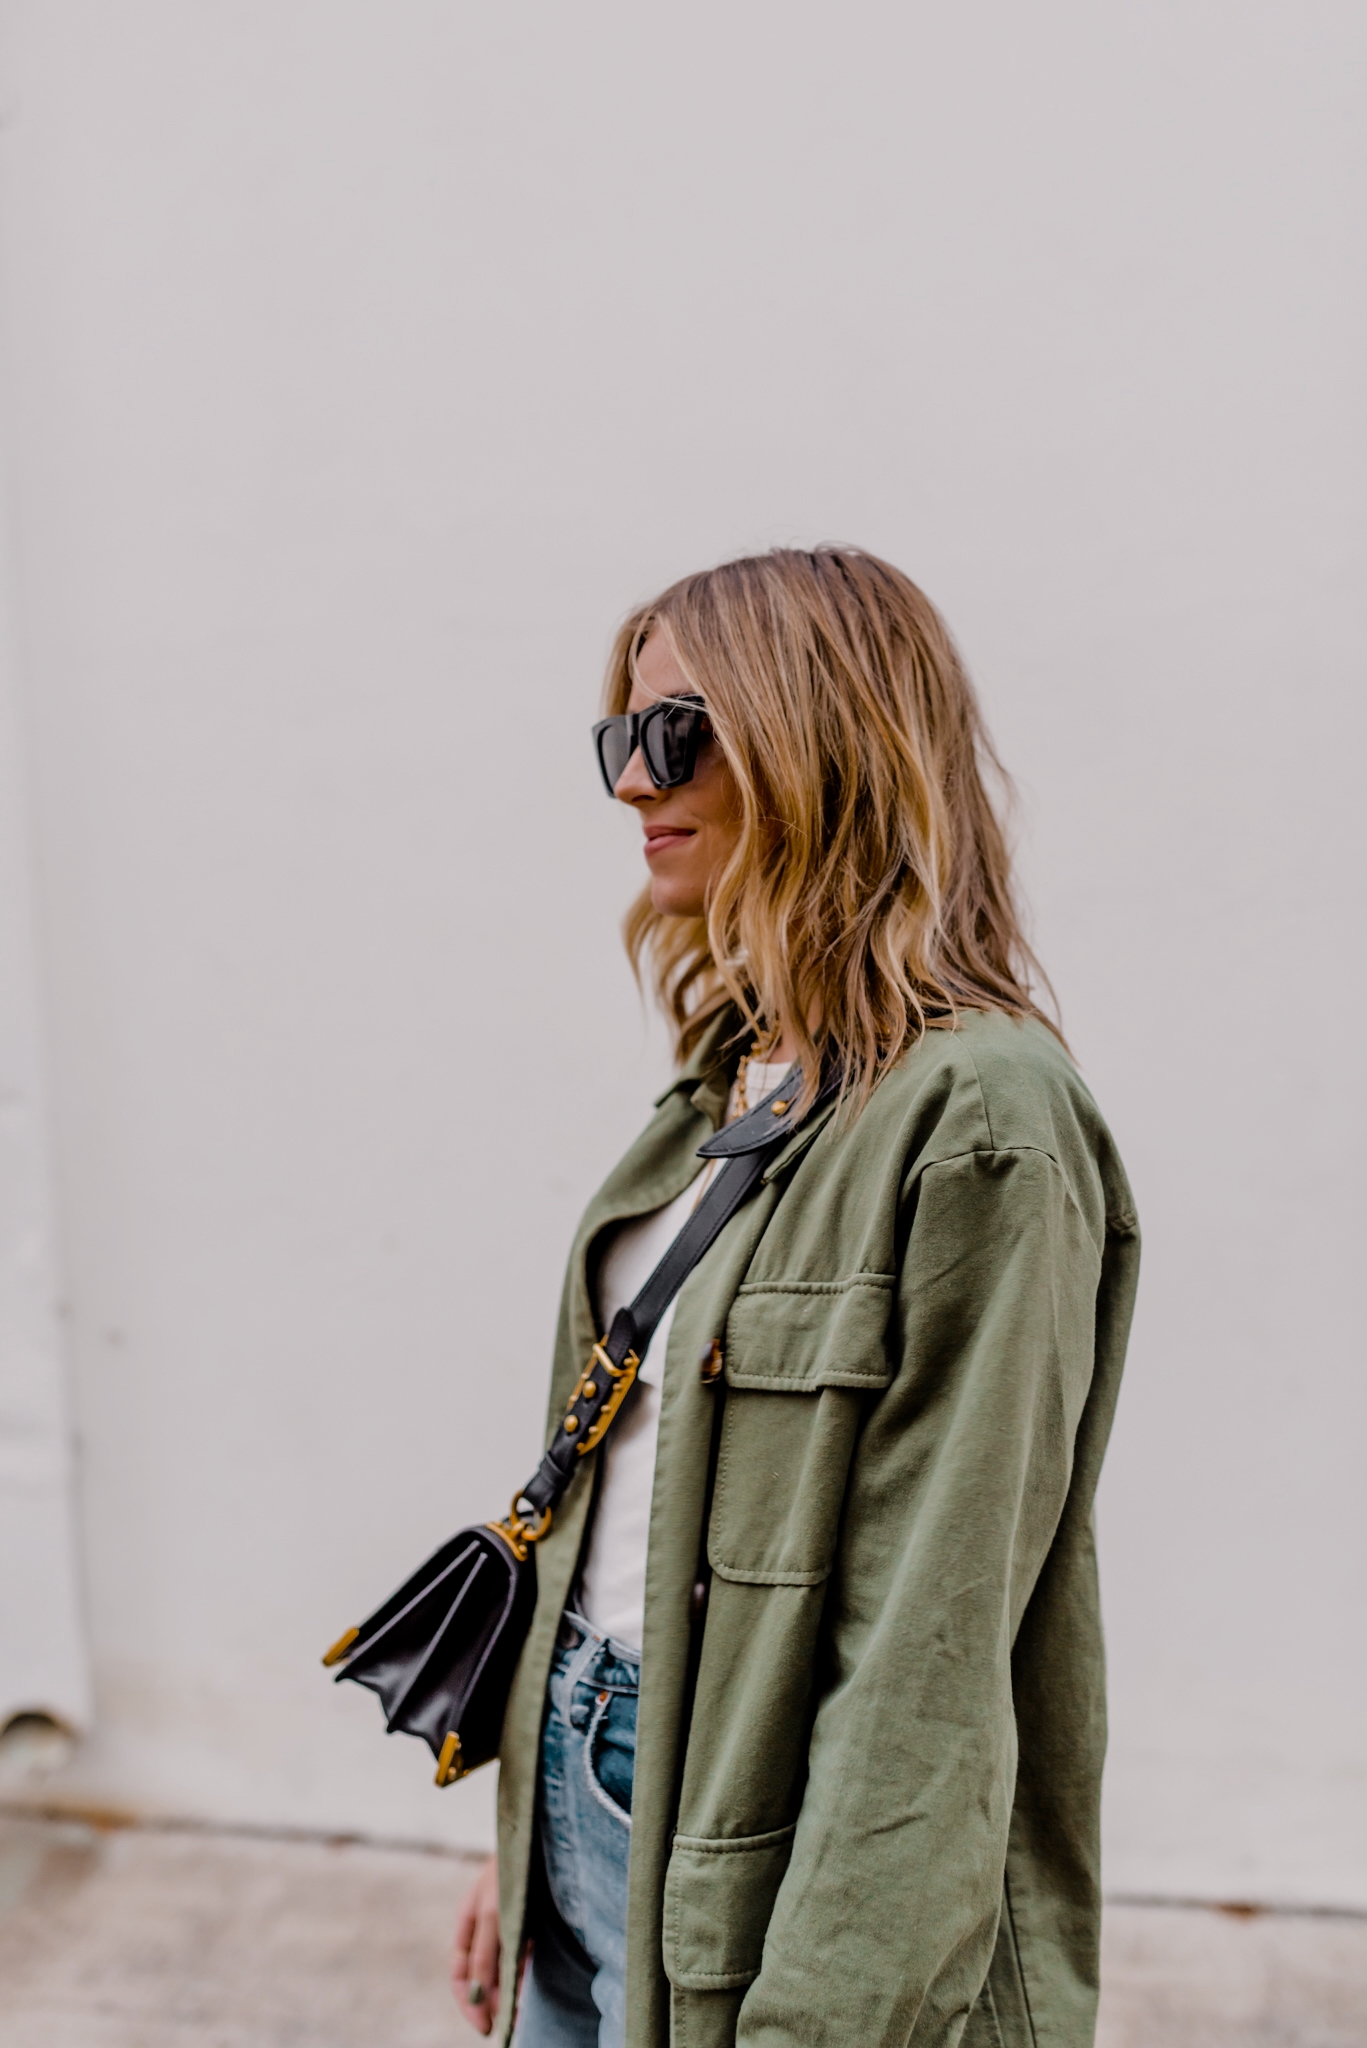 2 Ways To Style A Military Jacket - Camilla Thurman - Navy Grace |Military Jacket by popular San Diego fashion blog, Navy Grace: image of a woman wearing a military jacket, ribcage denim, white t-shirt, black combat boots, black frame sunglasses, and a Prada purse.